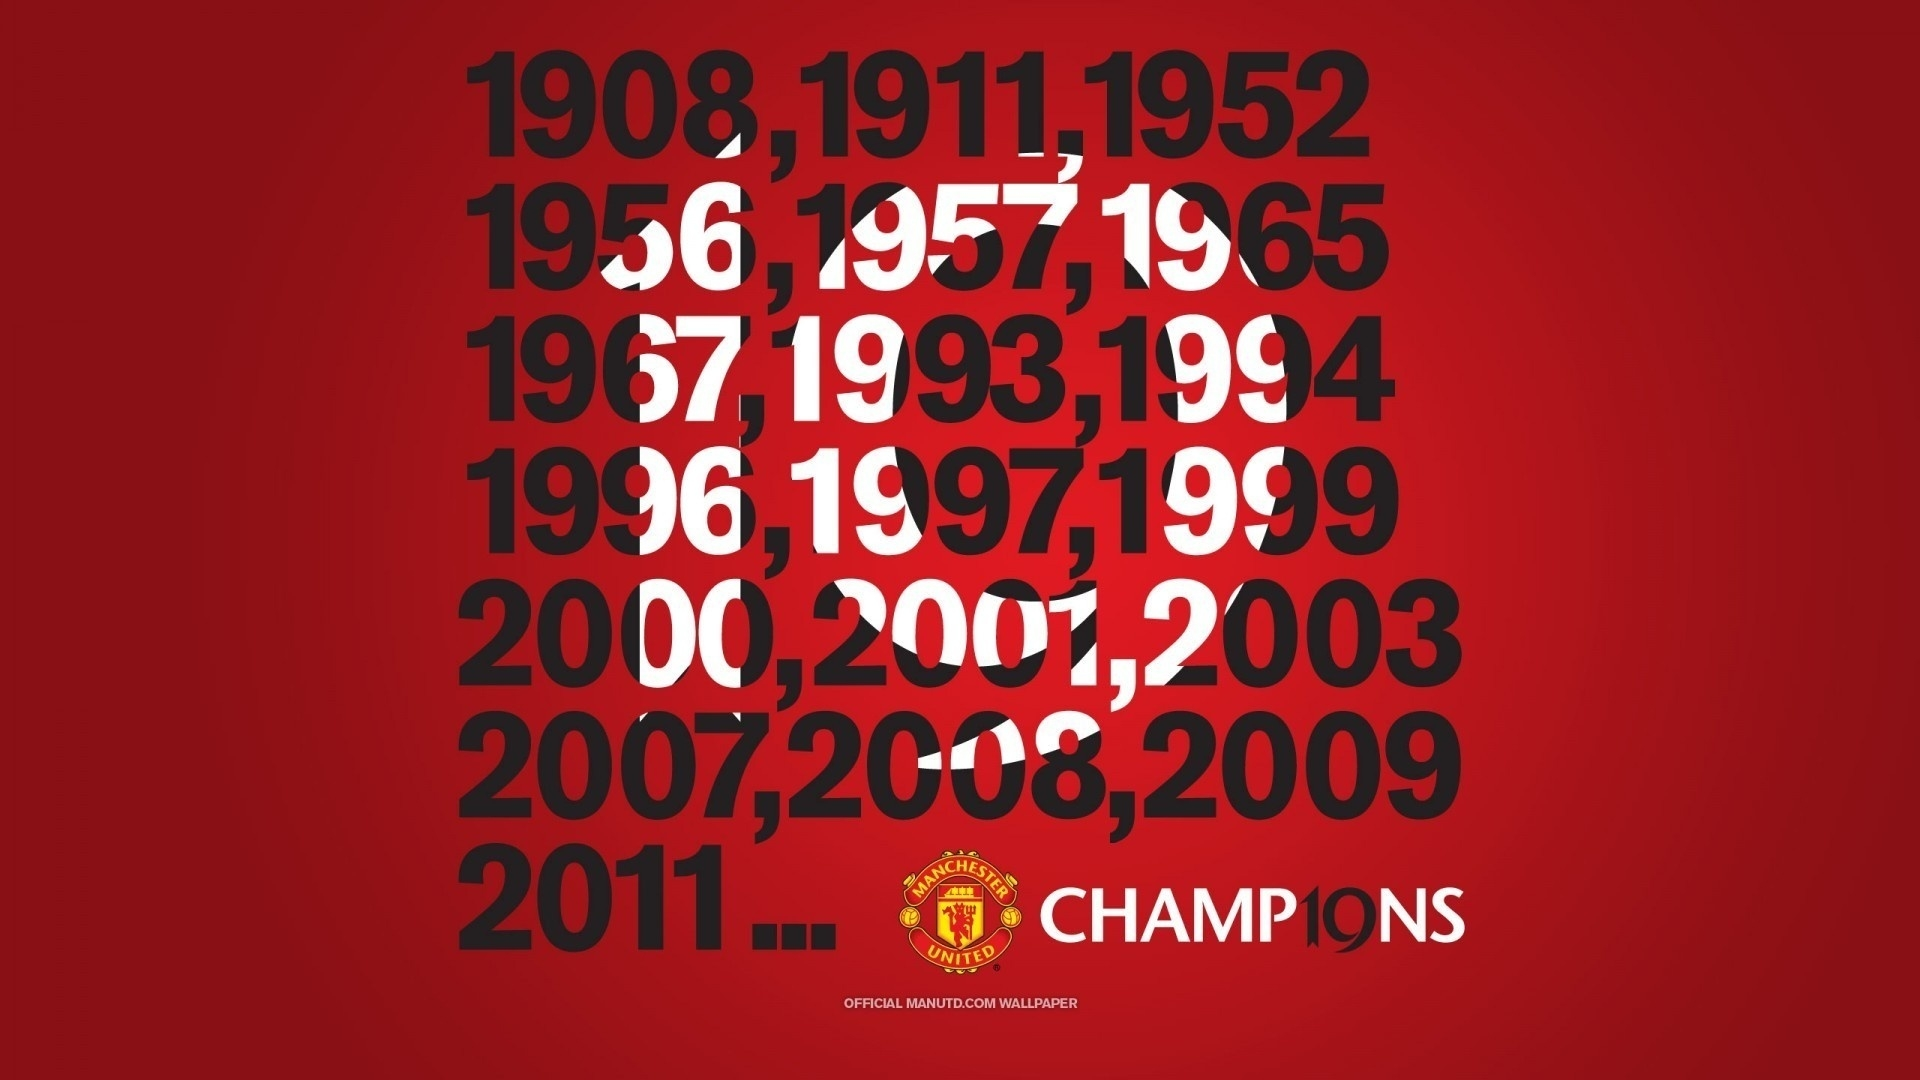 Download wallpaper 1920x1080 manchester united champions year manchester united champions year voltagebd Choice Image